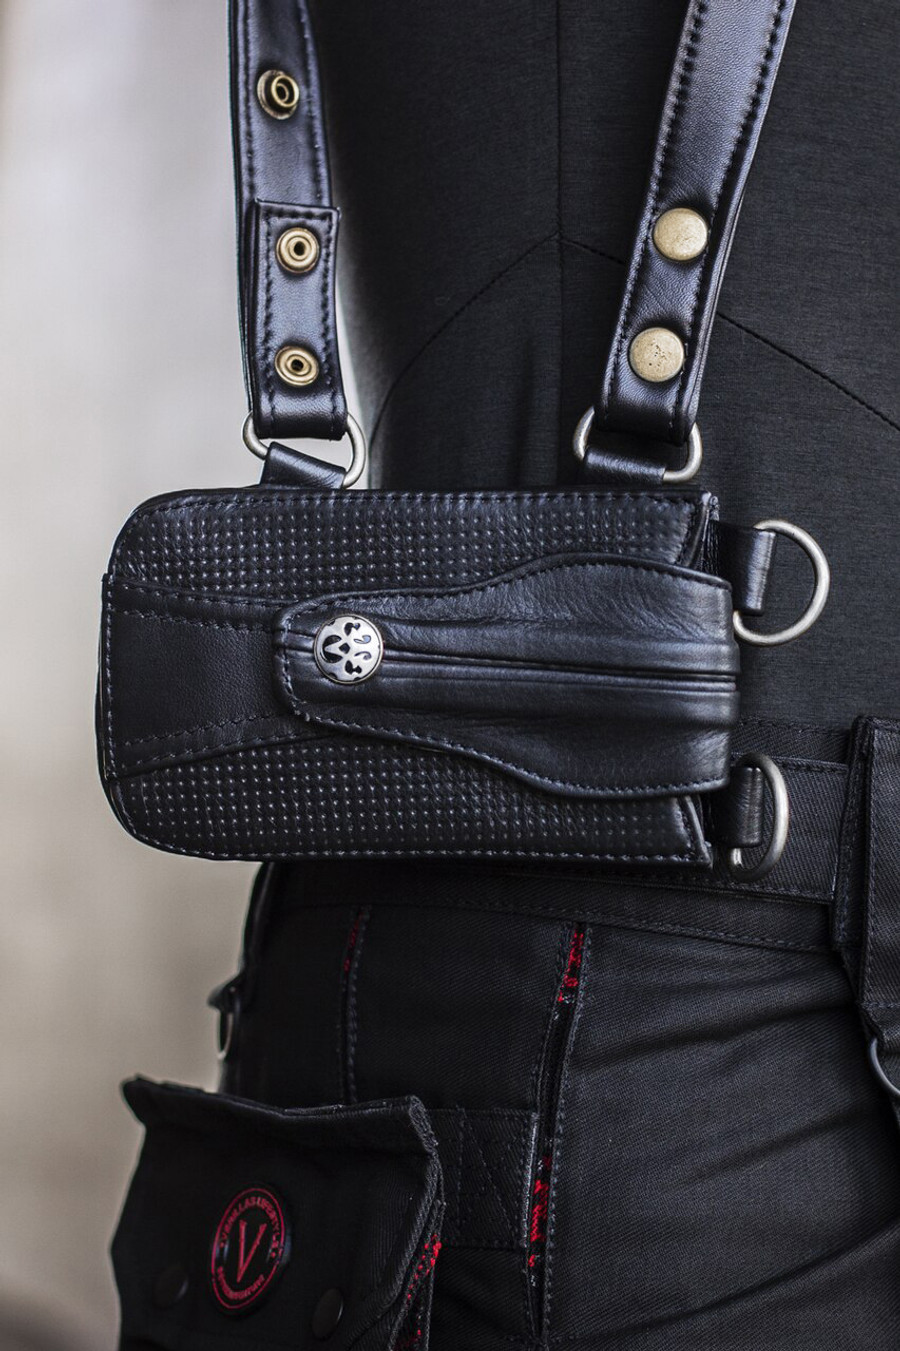 Leather Versatta Phone Pocket in Black w/ Silver Details attached to a Versatta Phone and Wallet Holster